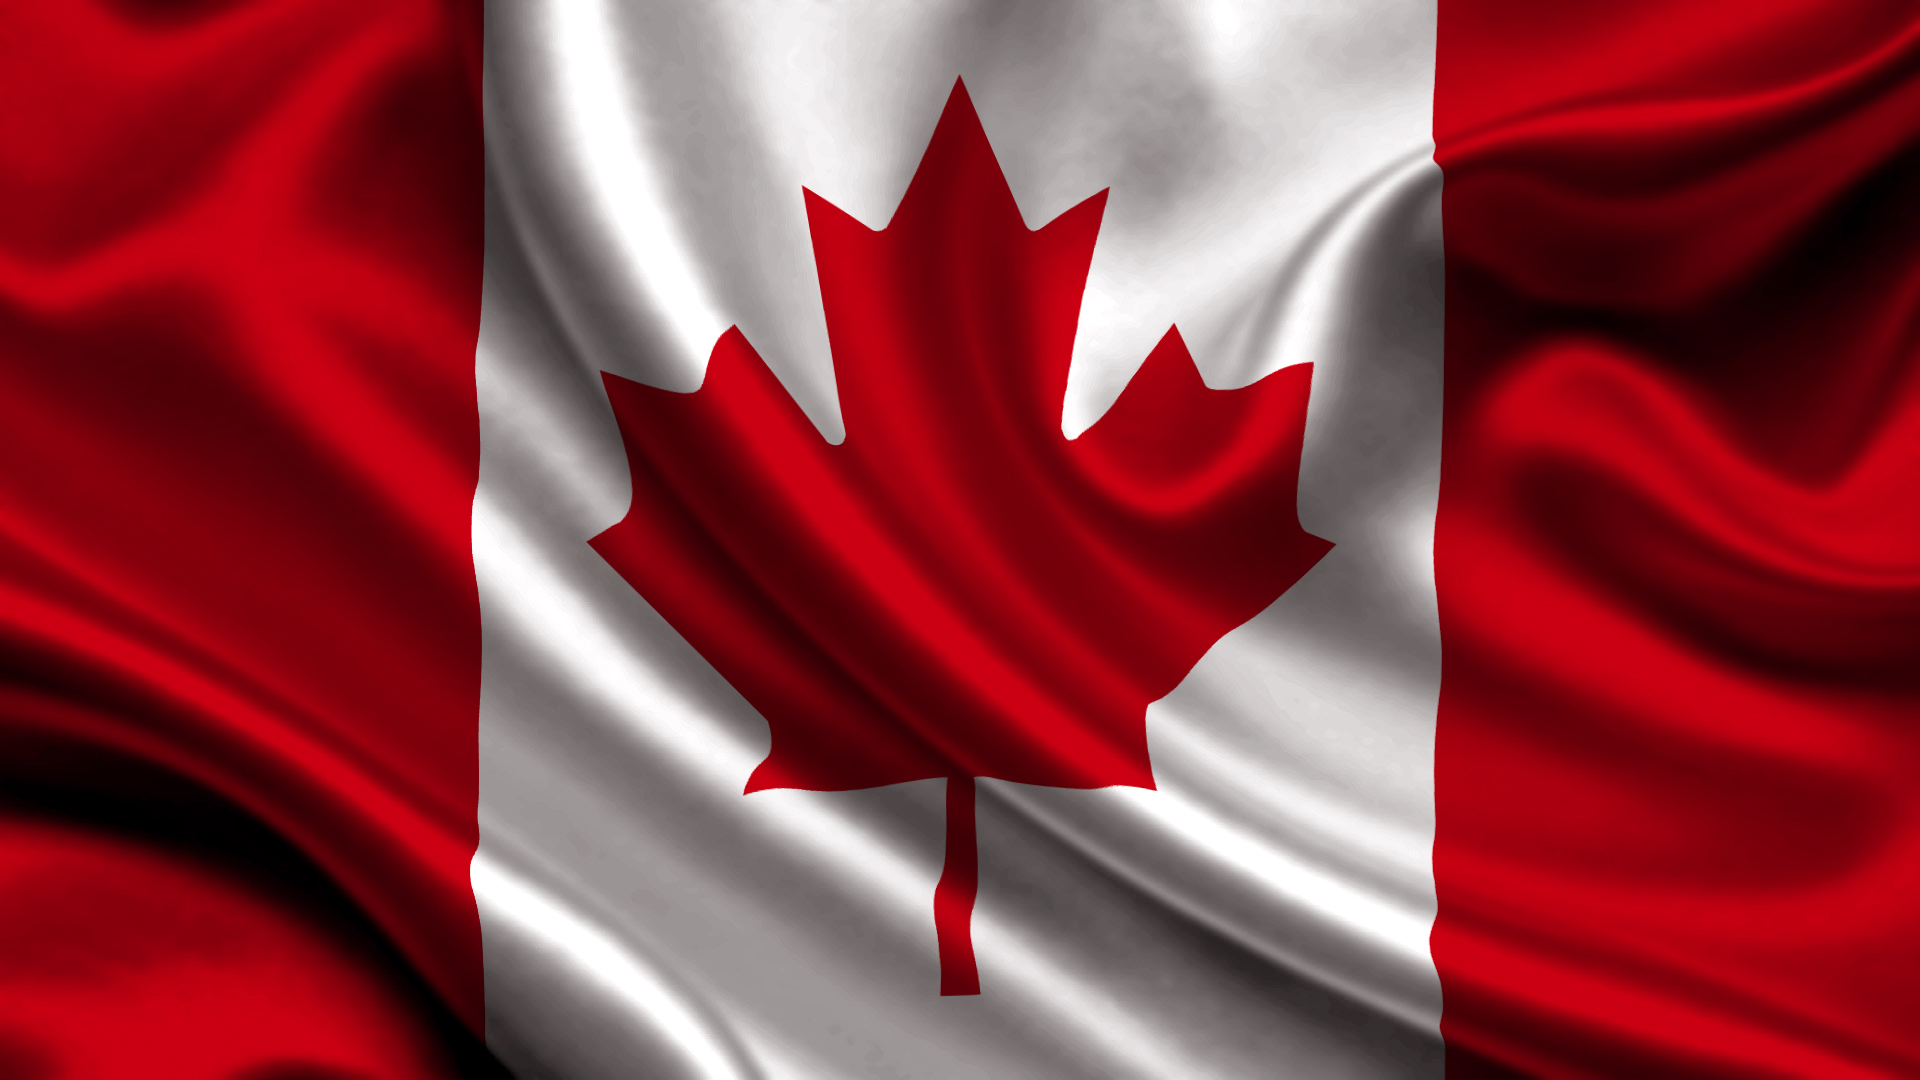 Canada Flag HD Wallpapers Download Desktop Wallpaper Images 1920x1080